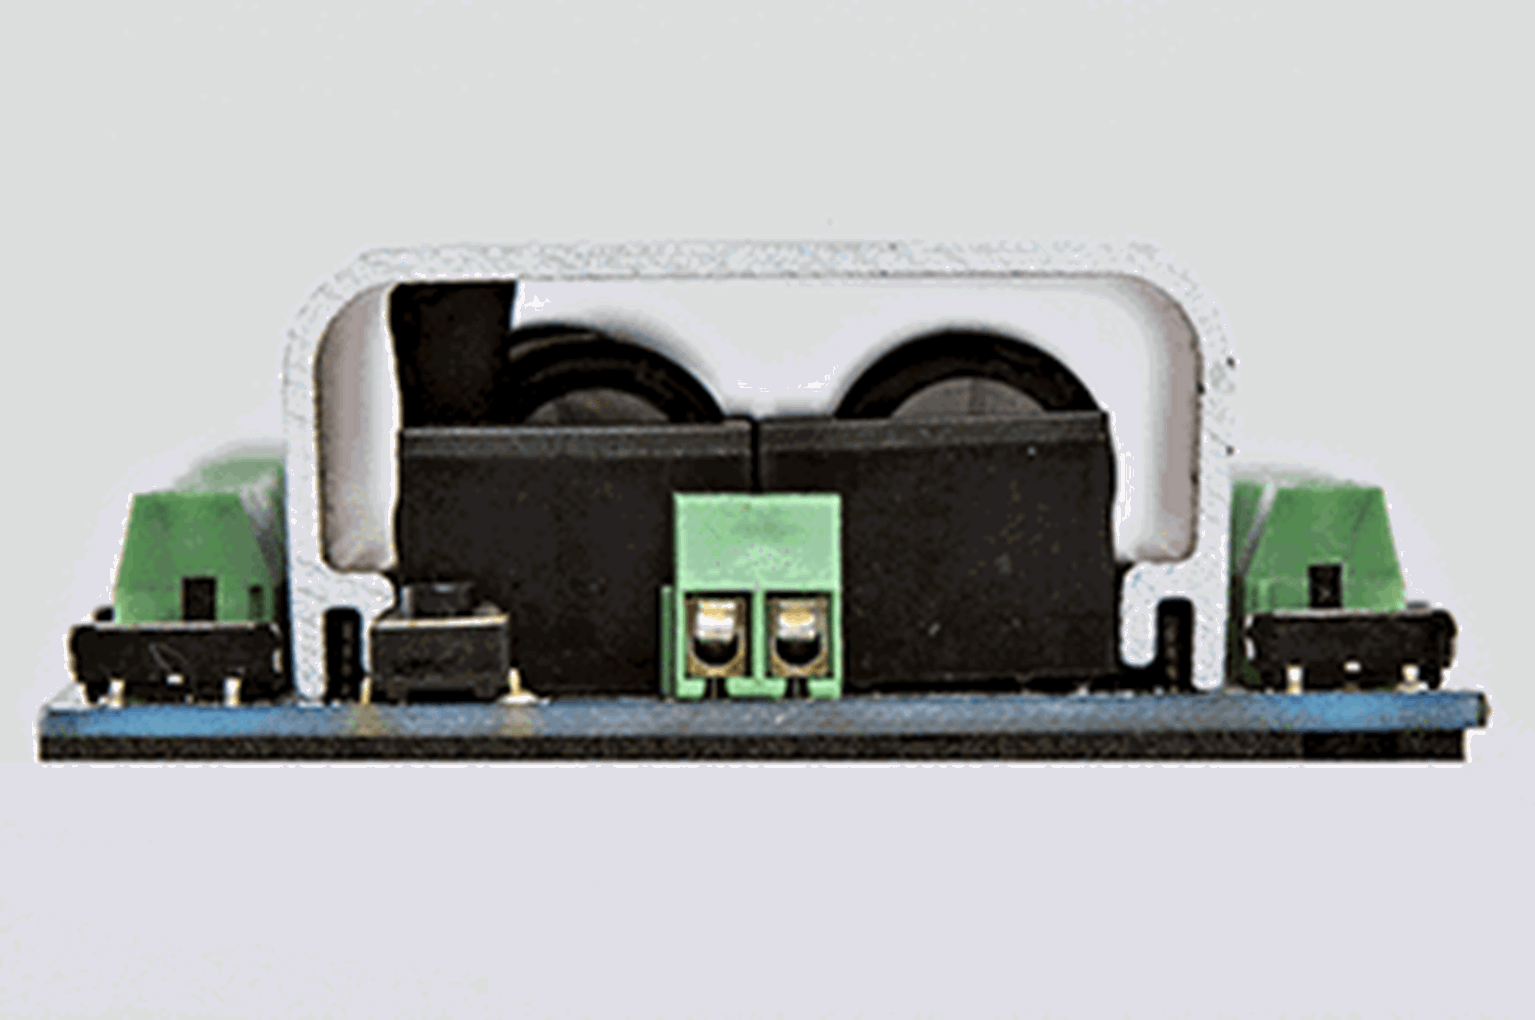 Accessory Decoder CDU Solenoid Drive SX 8-Way with Power-Off Memory and Protective Case